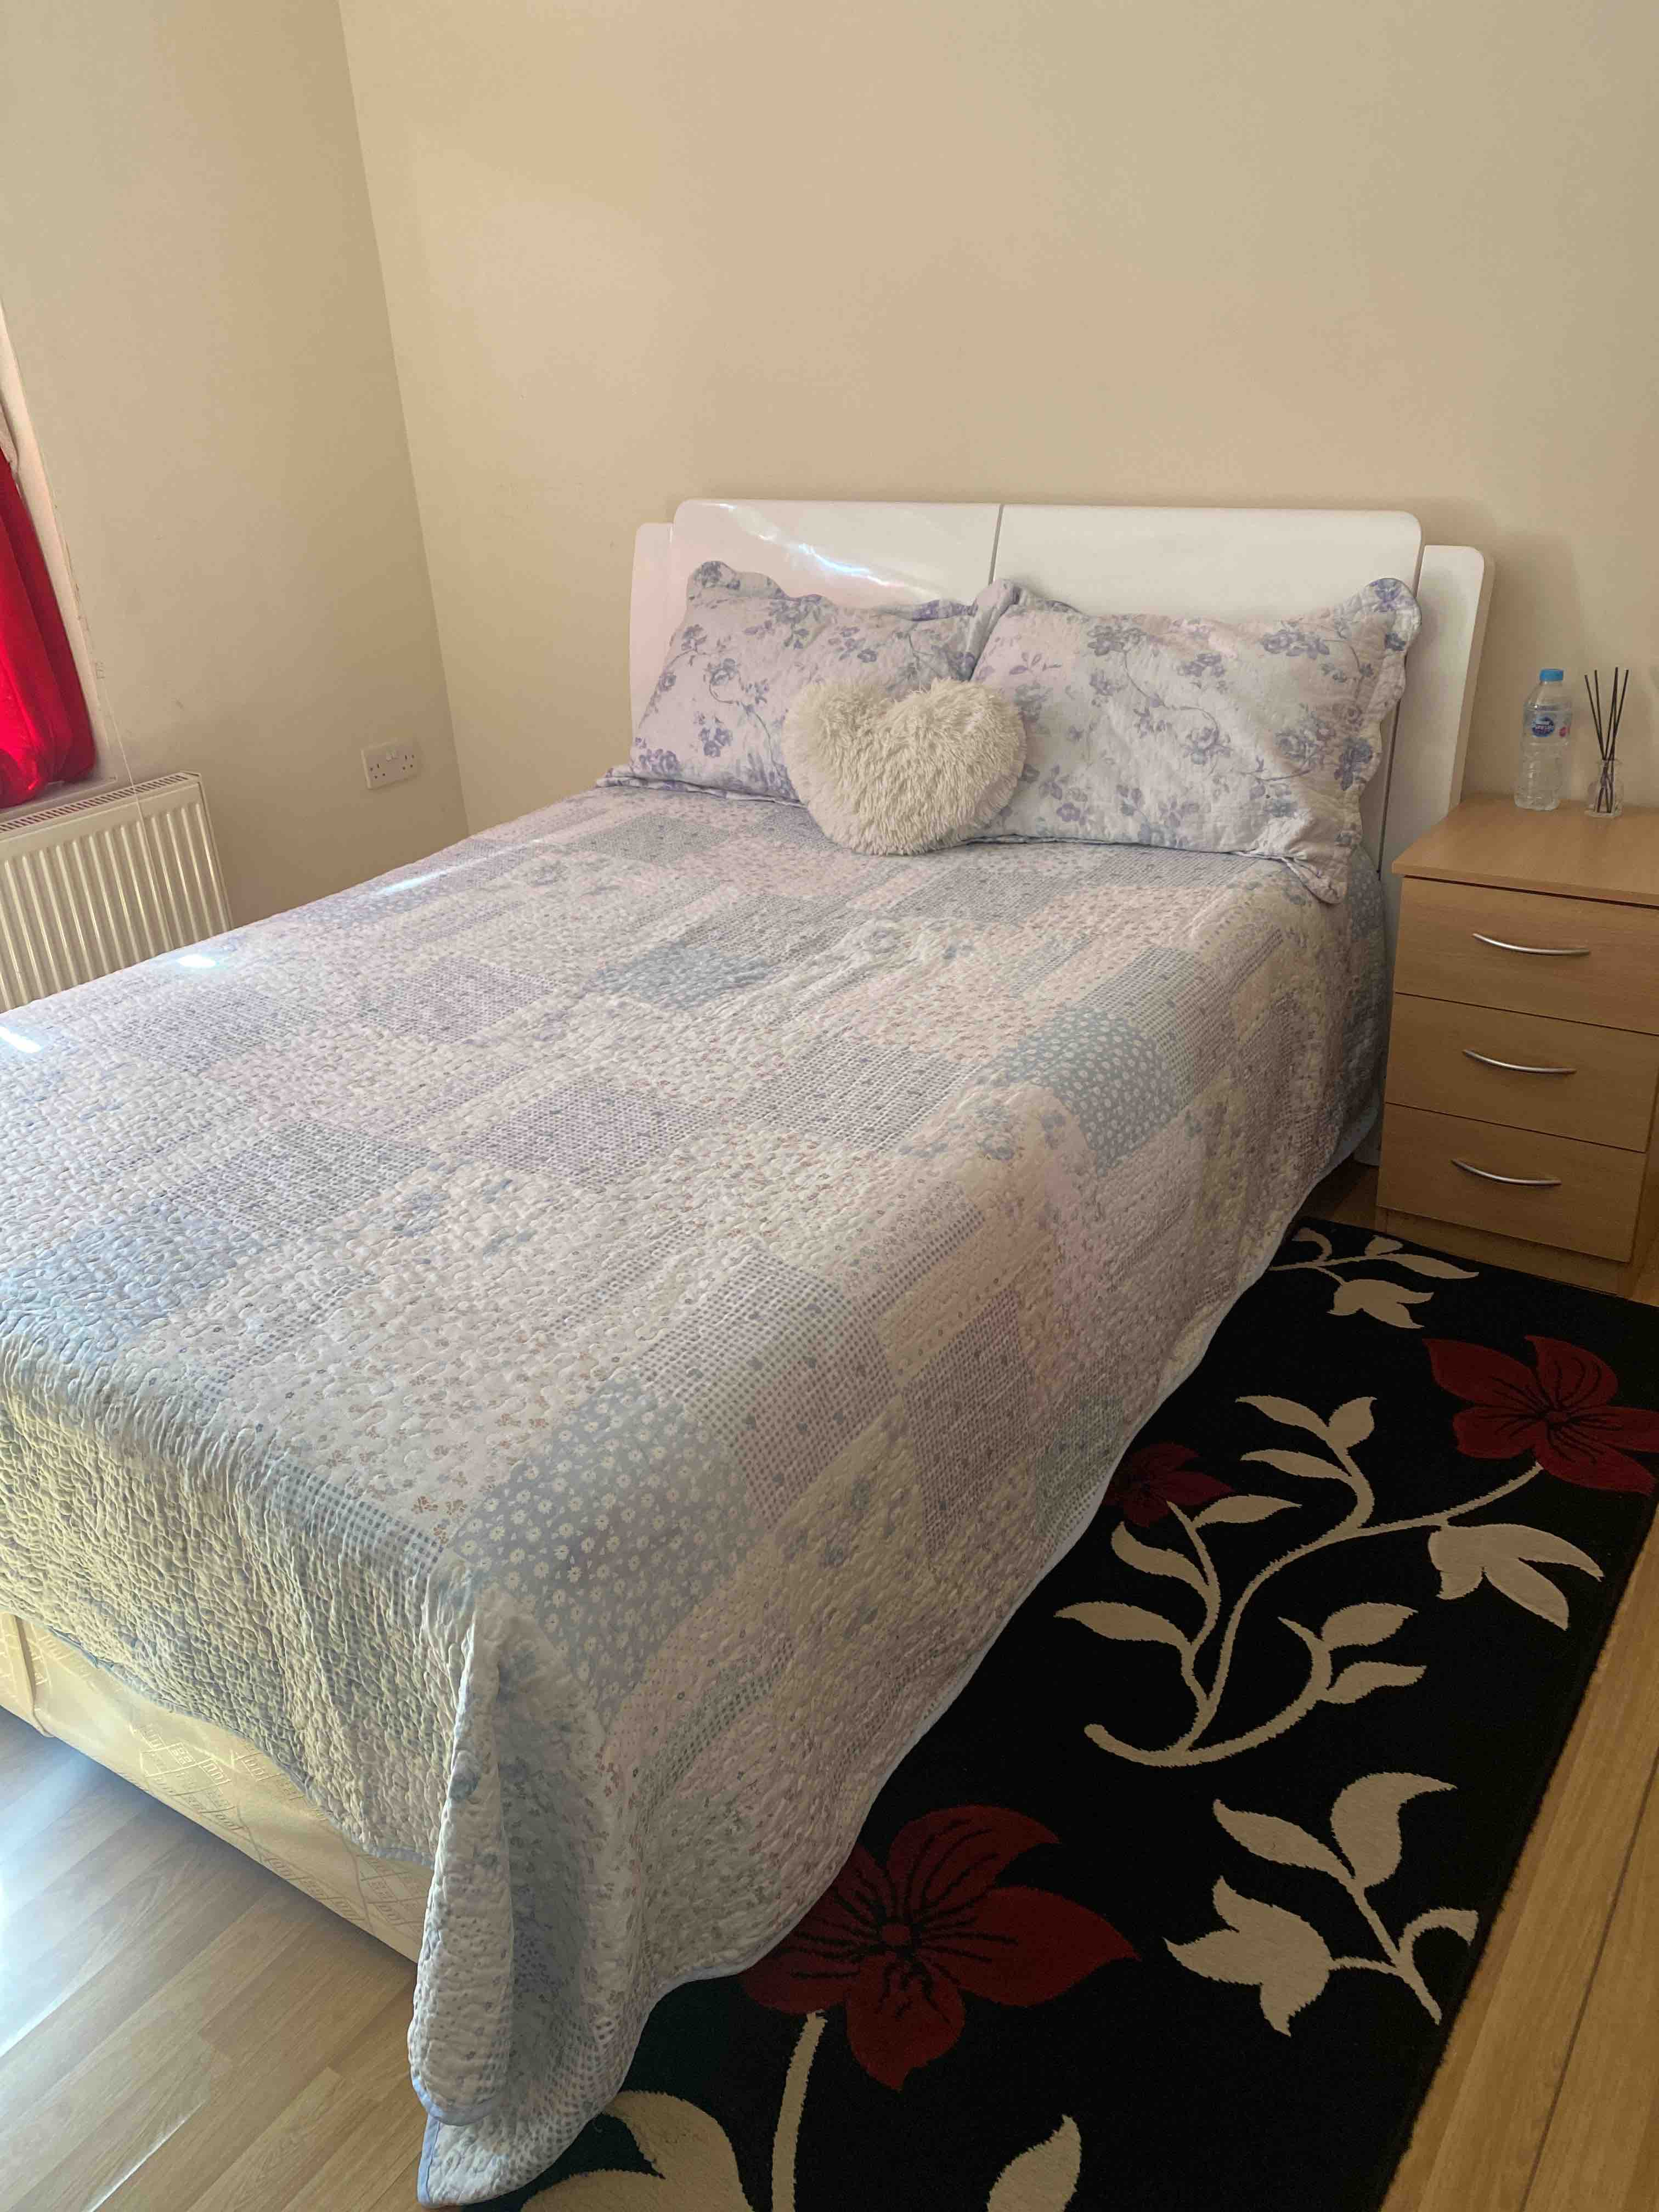 1 room in St. Dunstan's and Stepney Green, London, E1 4DA RoomsLocal image